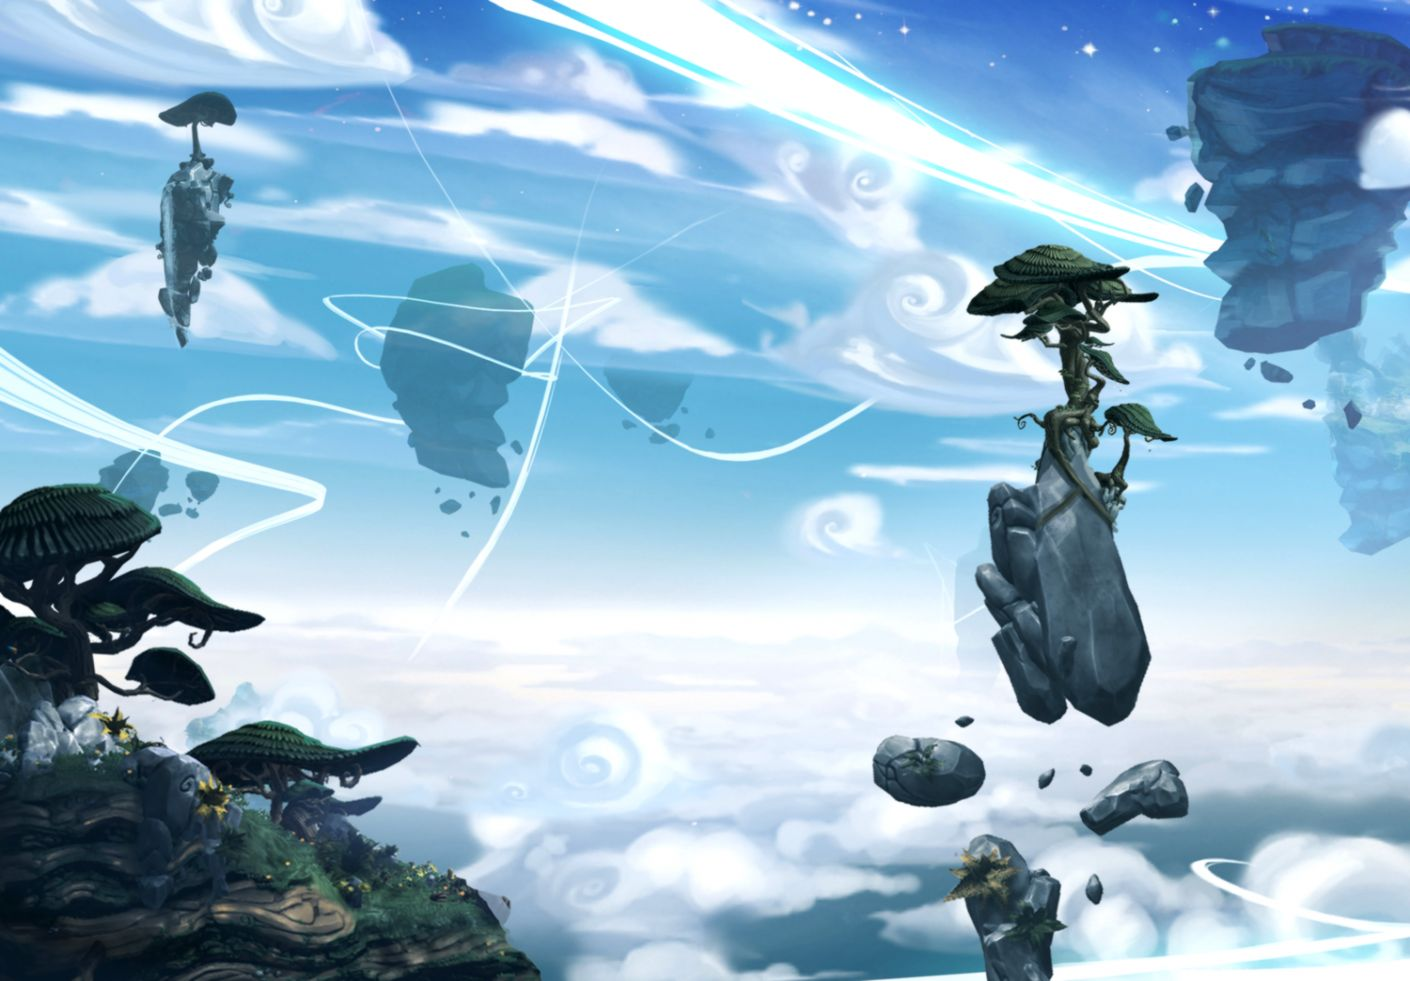 Project Spark Game Wallpaper Hd | Dom Wallpapers